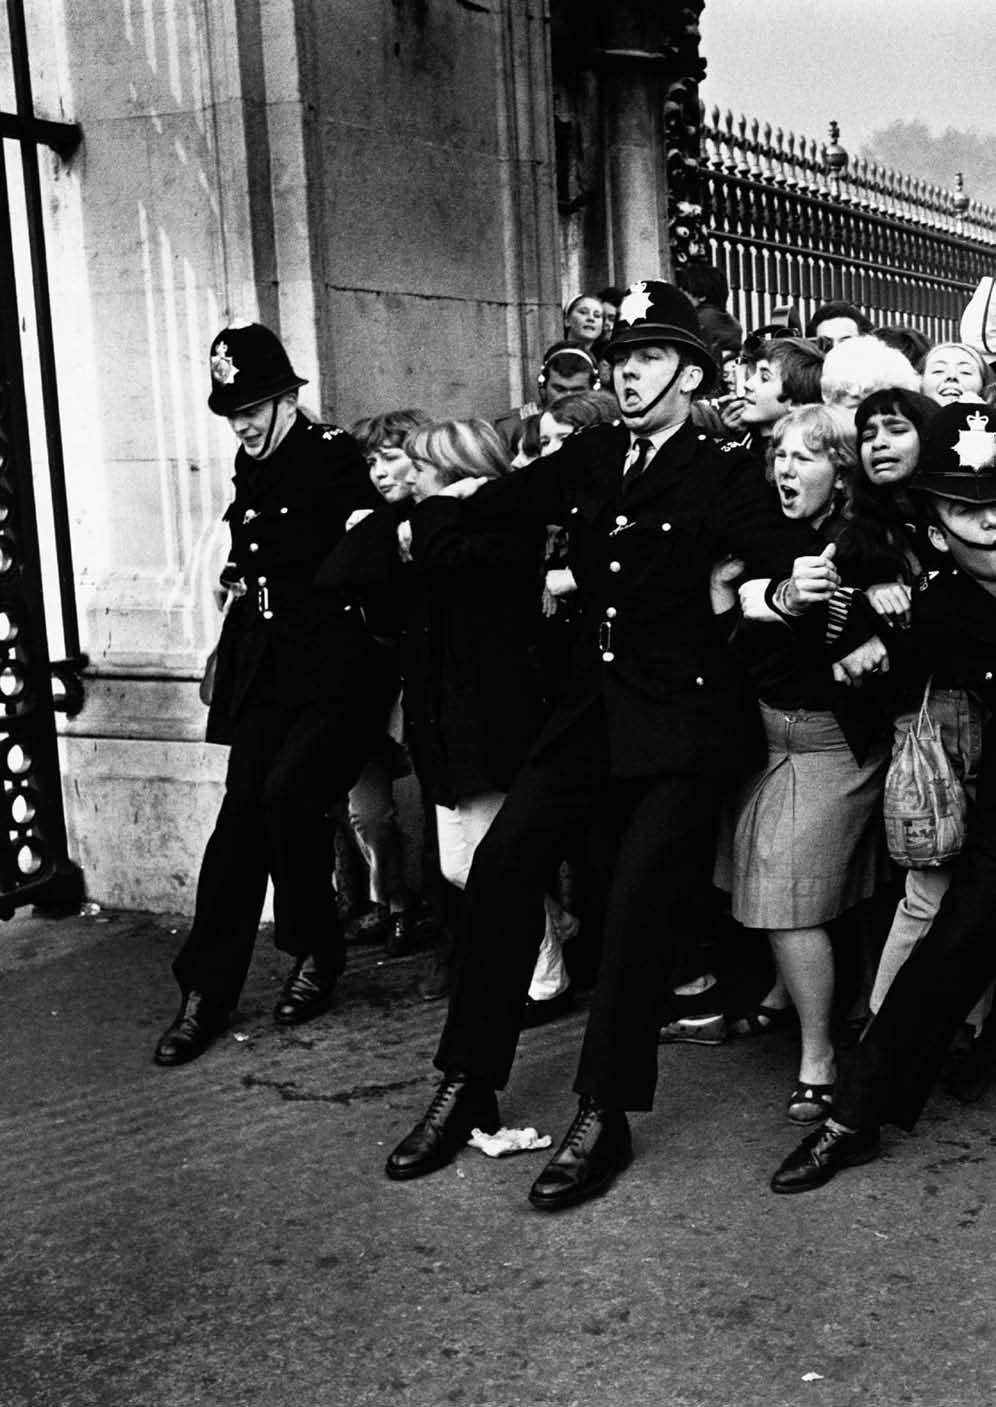 60s Beatles Fans Storm Buckingham Palace In 1961 Kredietbank S.A. Luxembourgeoise launches the first international issue in the European Currency Unit.